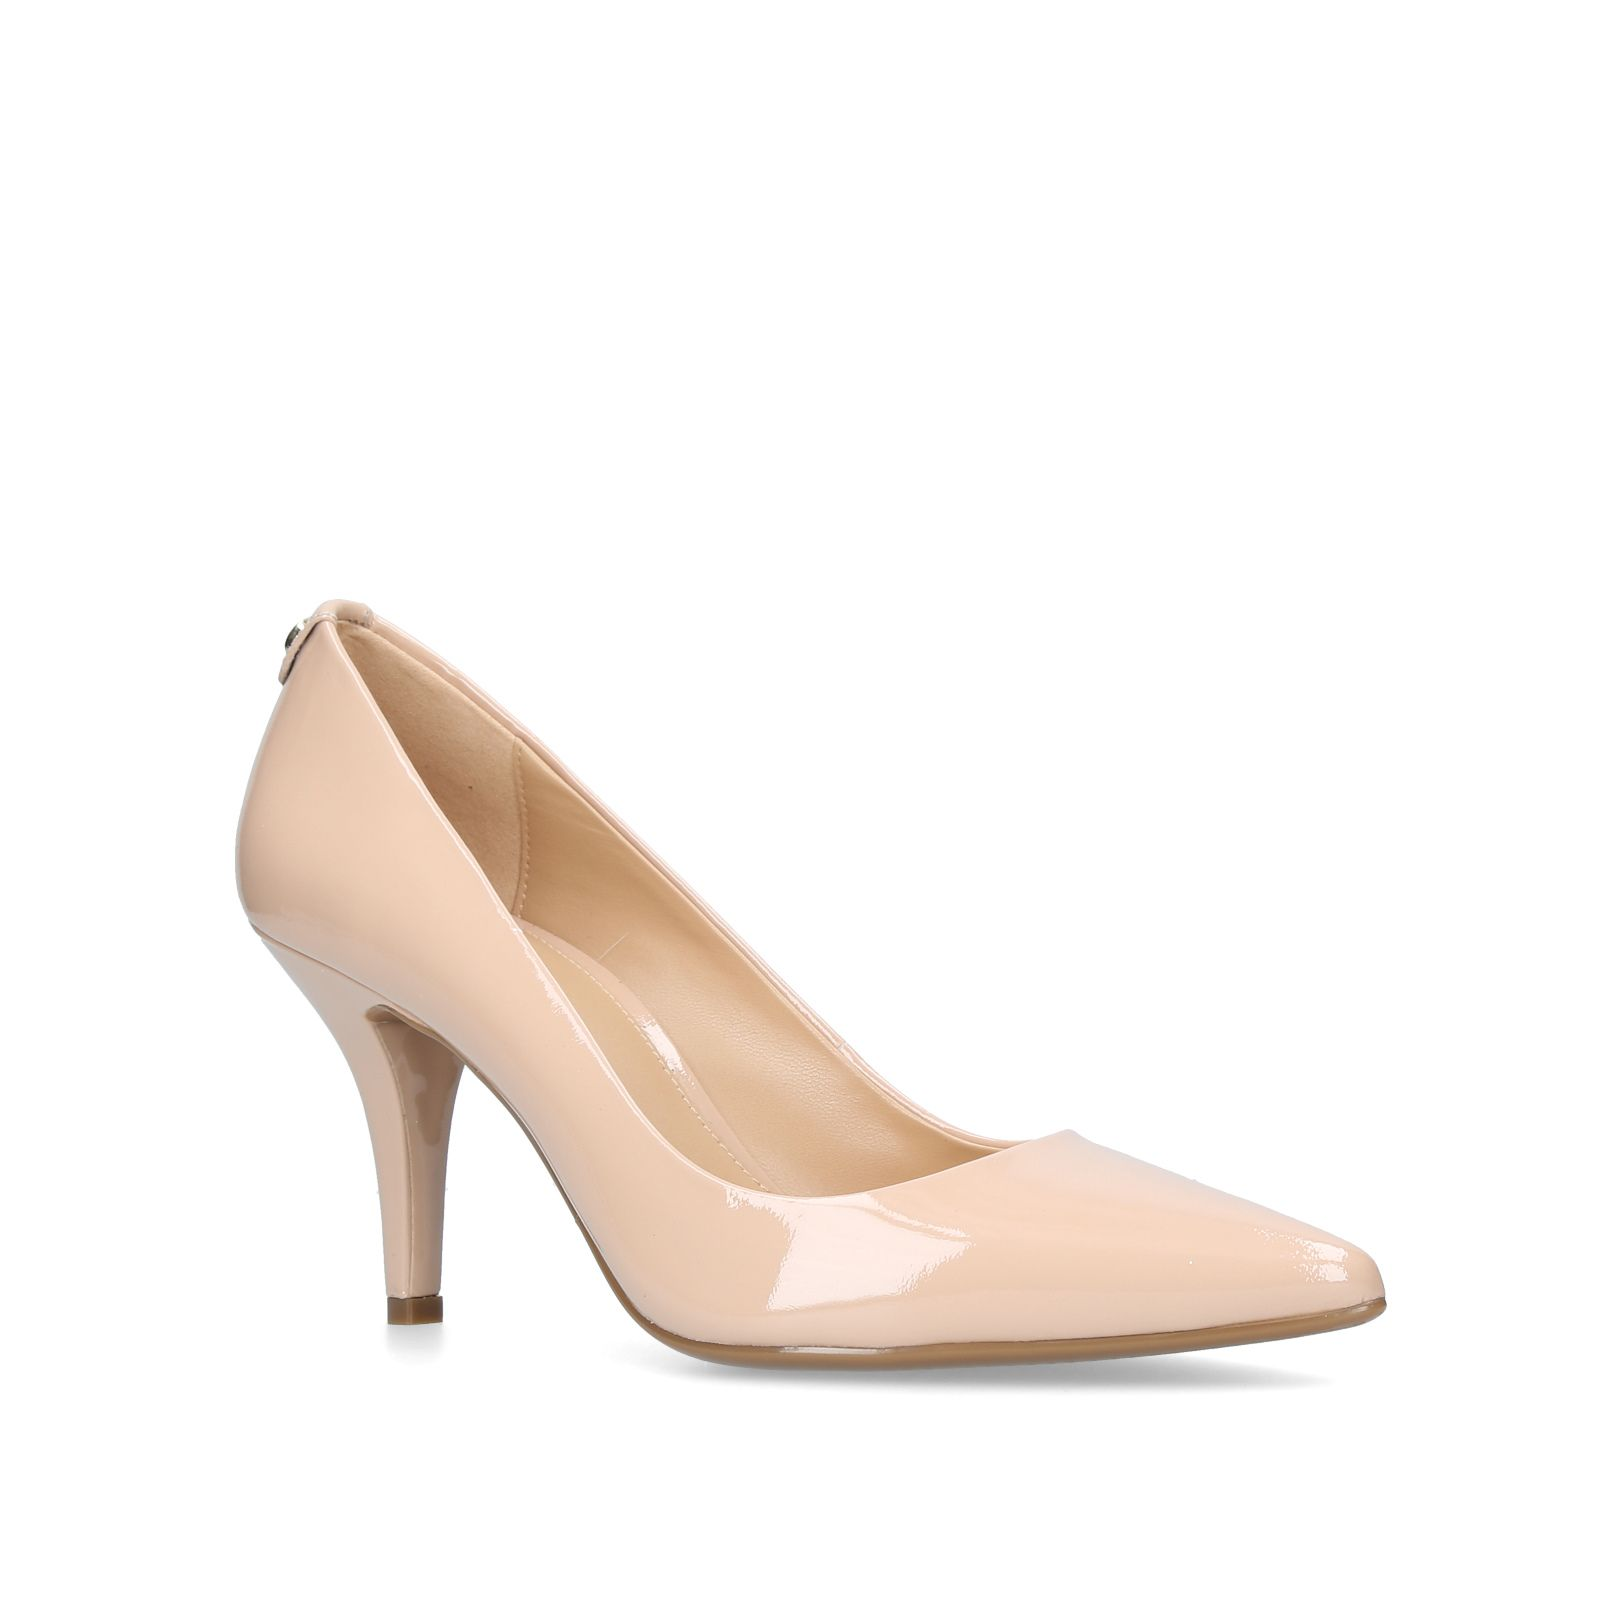 Michael Kors Mk Flex Mid Pump Courts, Pink